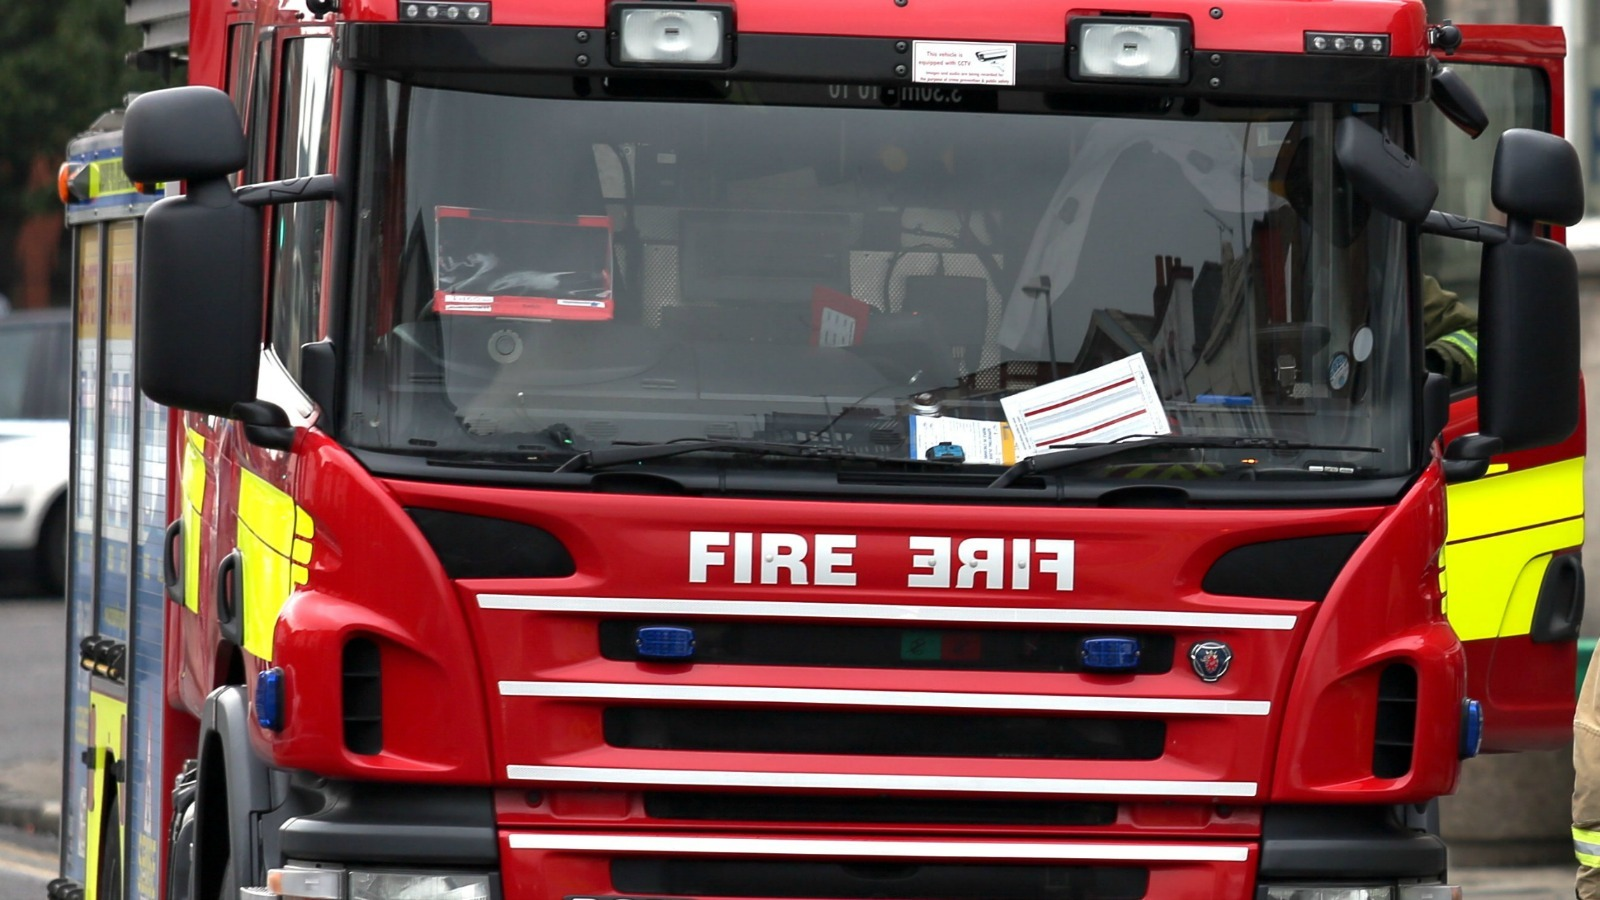 Firefighters tackle van blaze in Chester